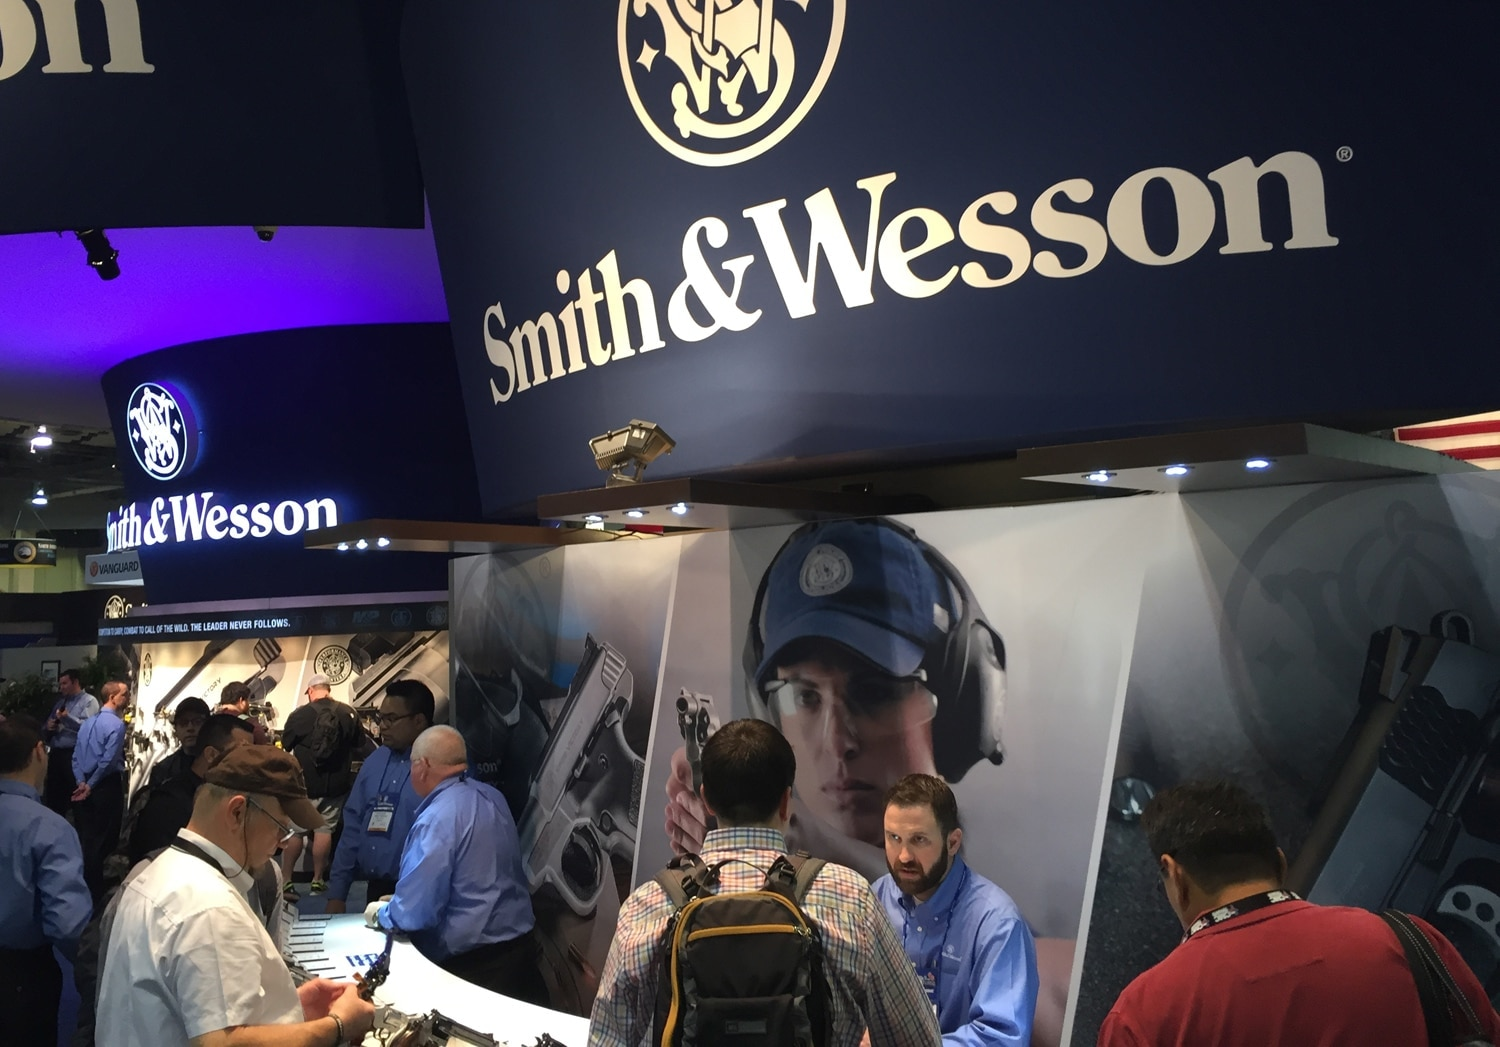 Representatives and patrons talking at the Smith & Wesson booth during SHOT Show in January 2016. (Photo: Daniel Terrill)